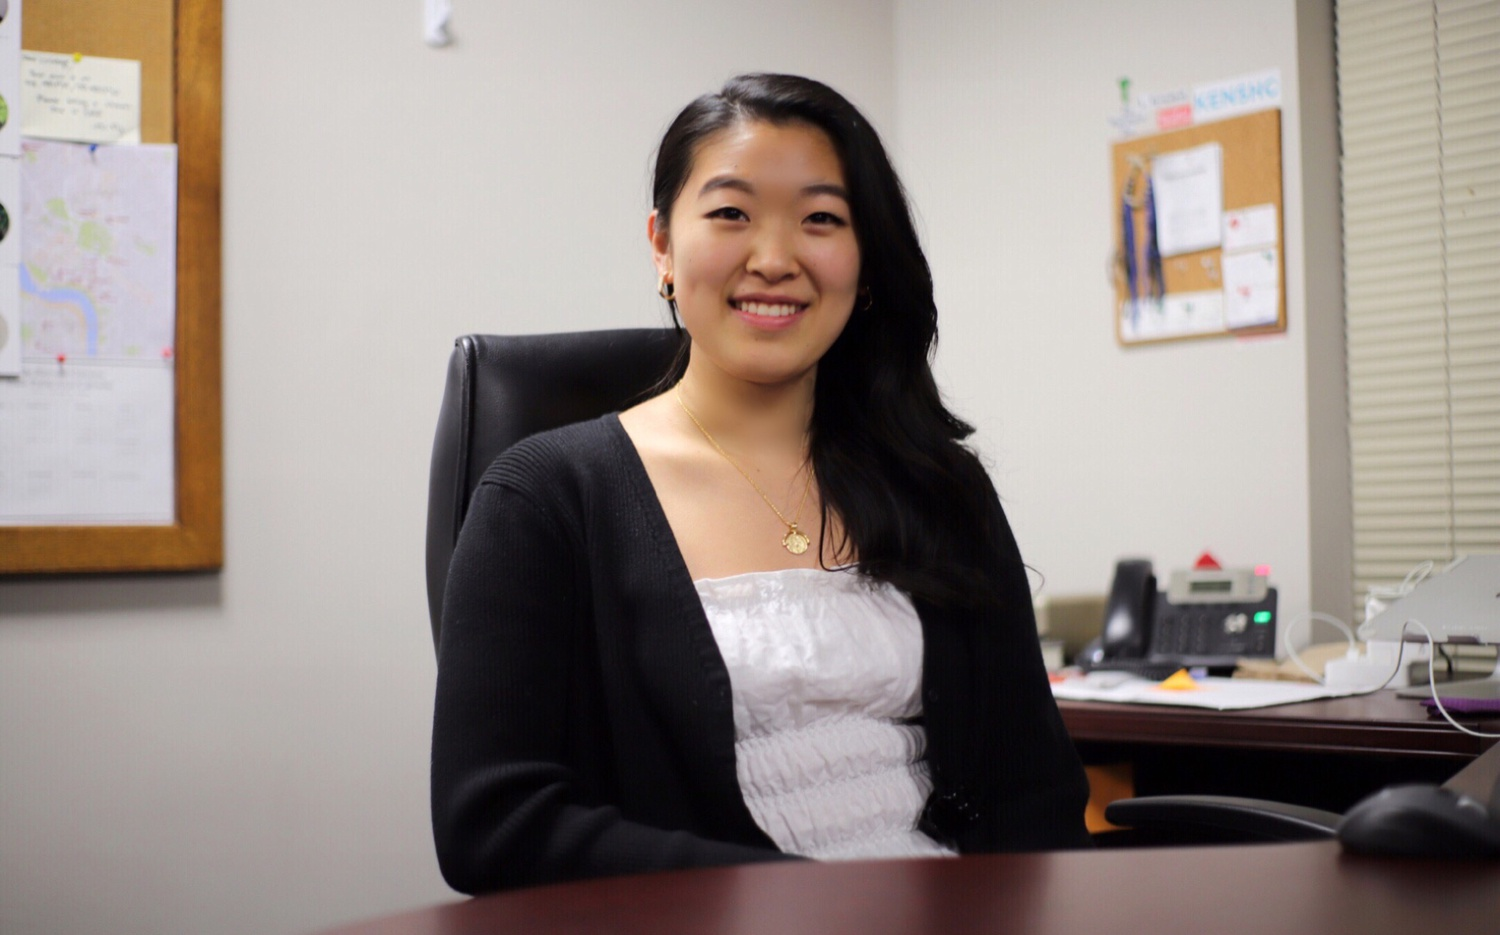 Emily M. Lu '21 has been named the Business Manager of the 147th Guard of The Harvard Crimson.